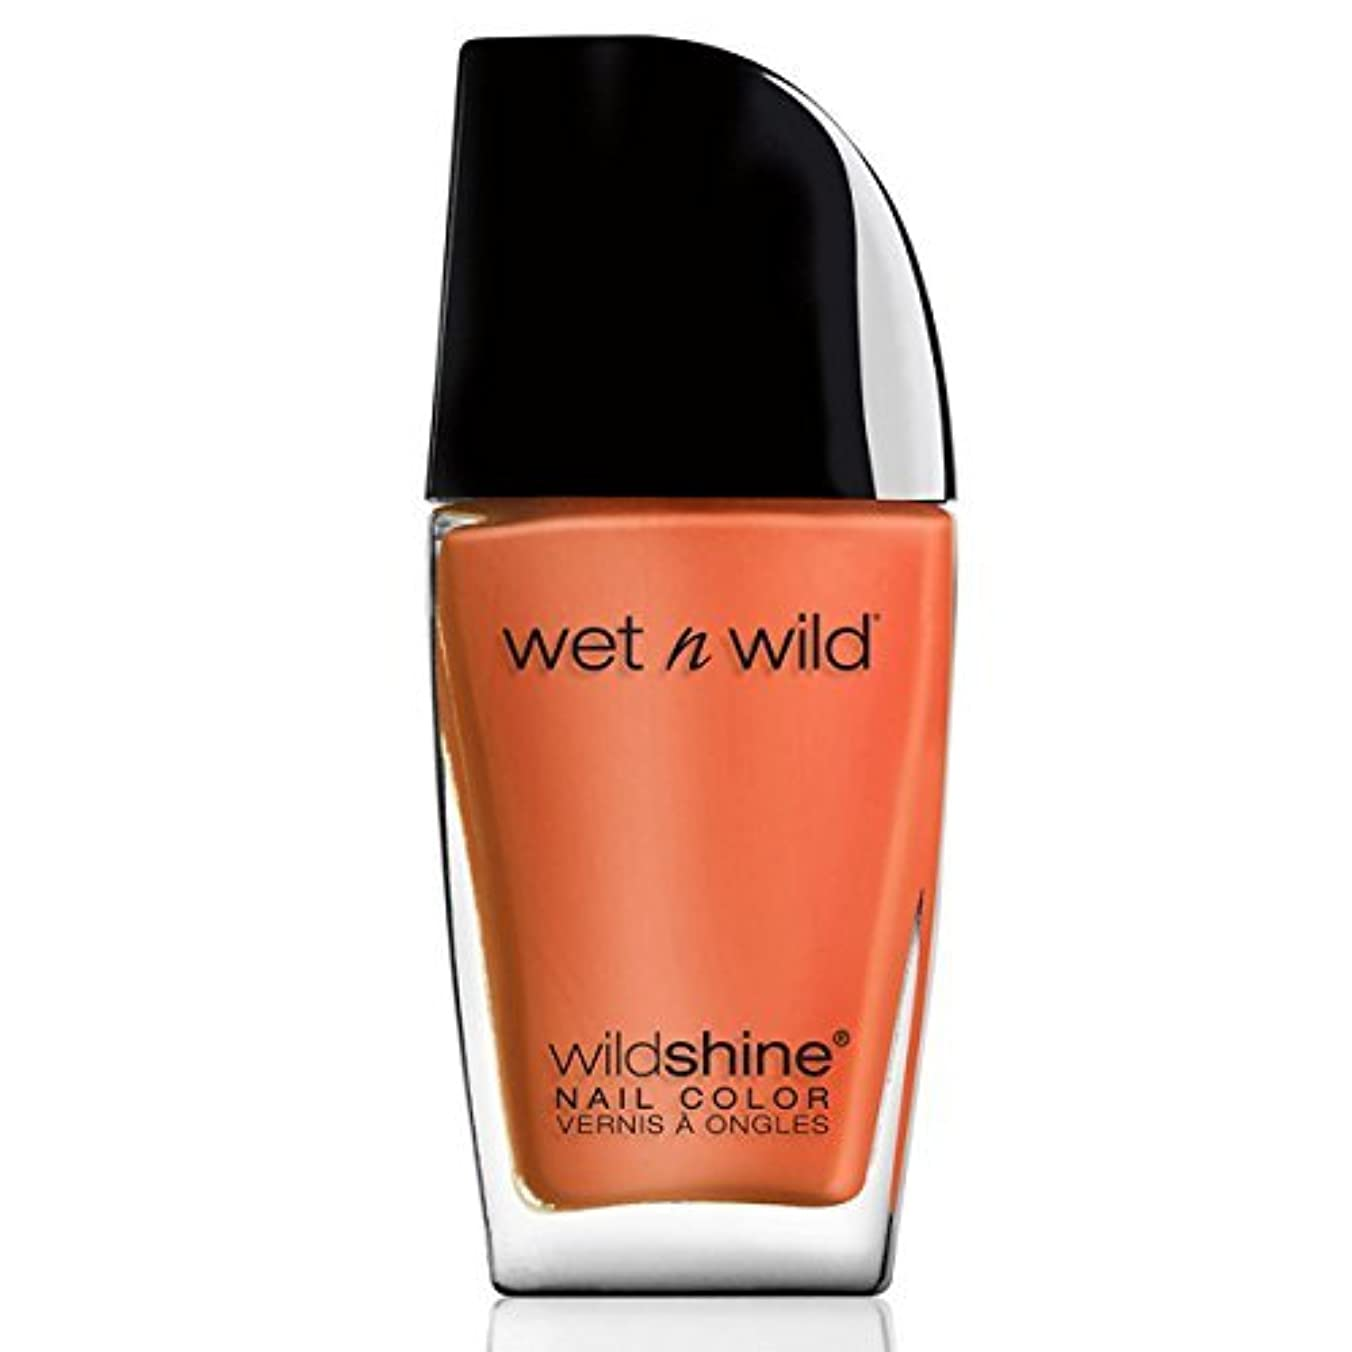 登山家スペルベッドを作るWet n Wild, Wild Shine Nail Color, Blazed - 1 ct by Wet 'n Wild